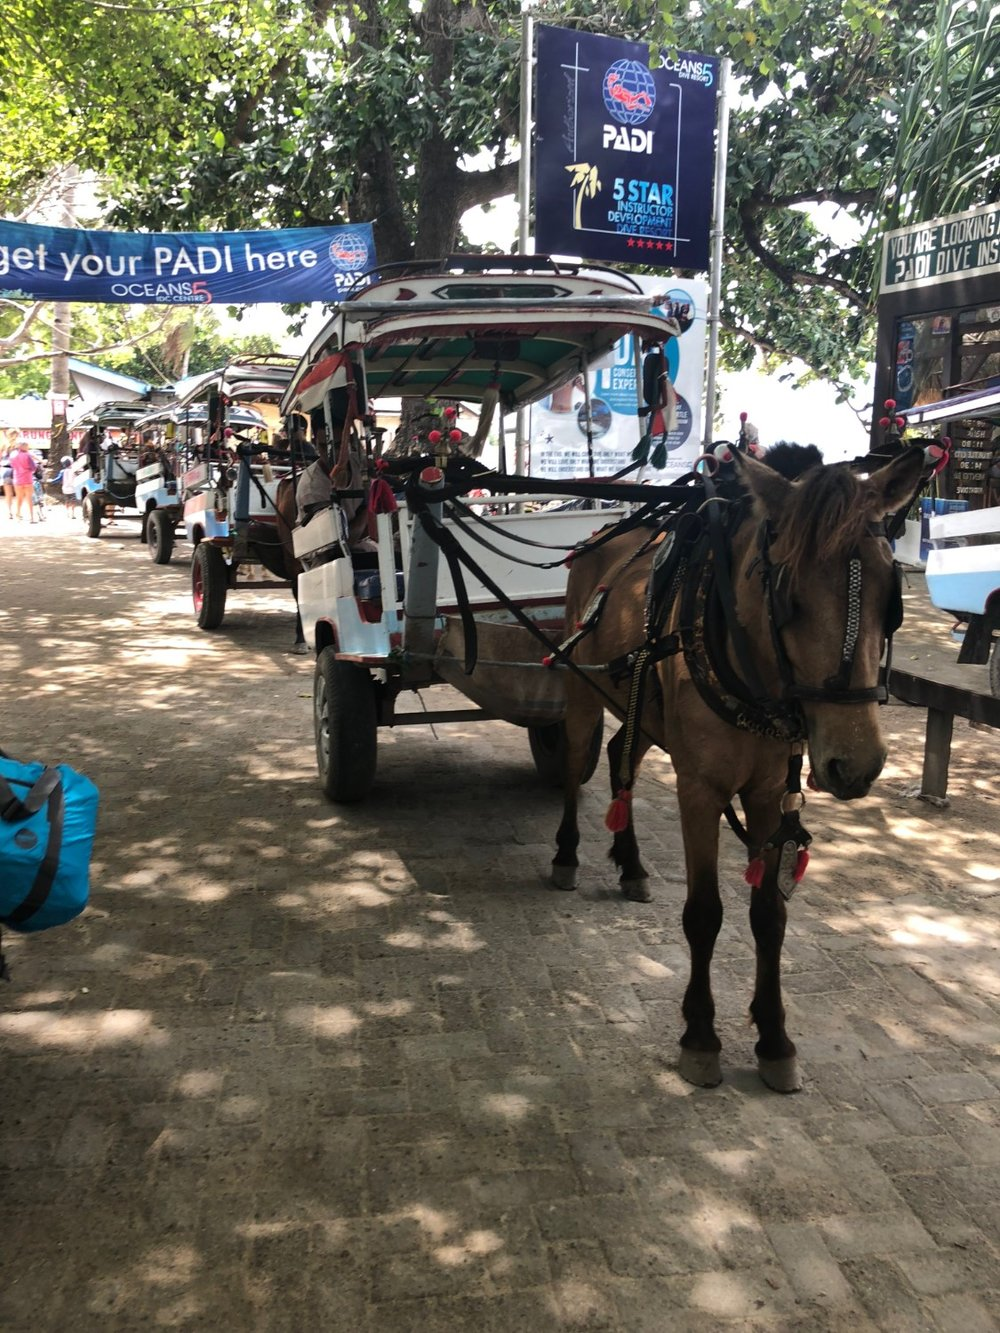 Horse drawn 'taaxi's' on Gili Air, Indonesia. boldlygotravel.com